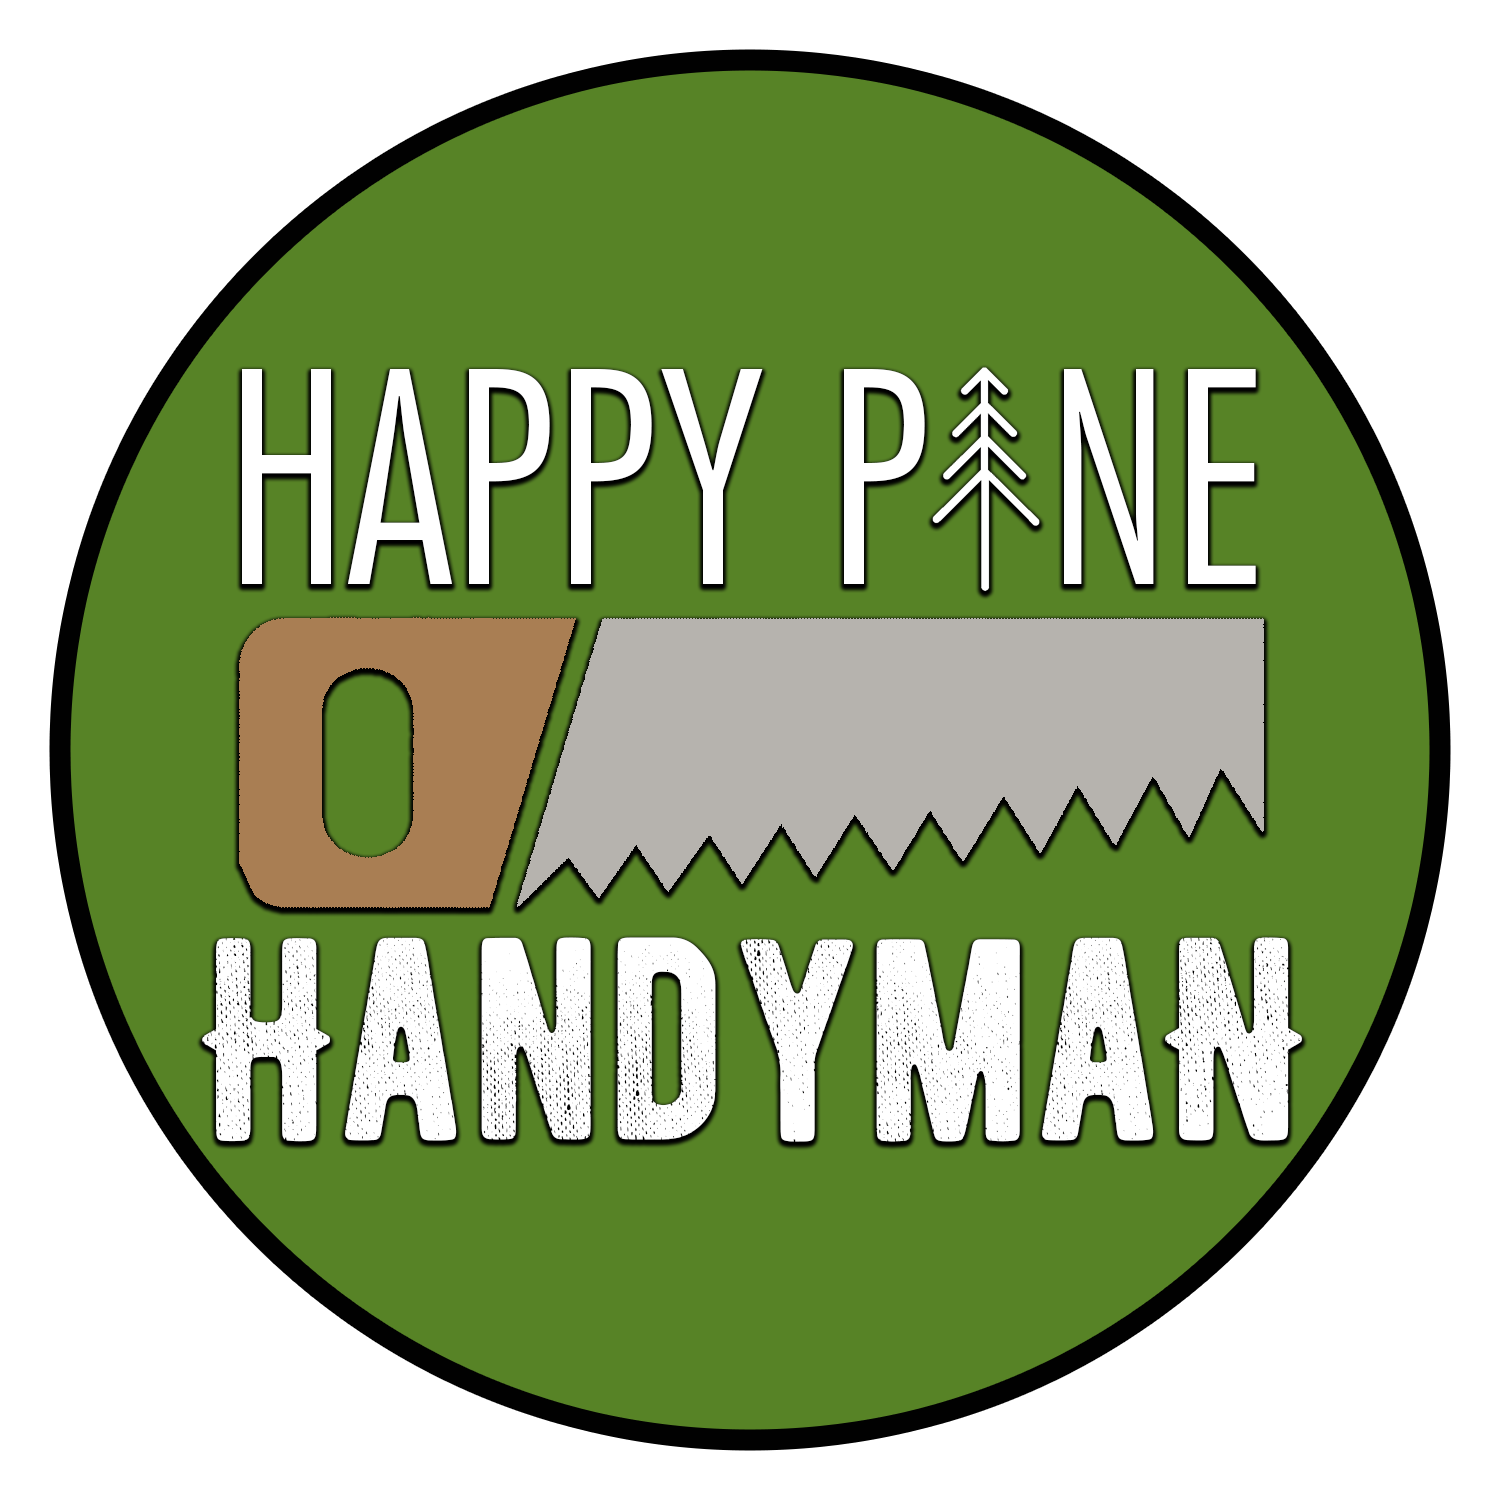 Happy Pine Handyman